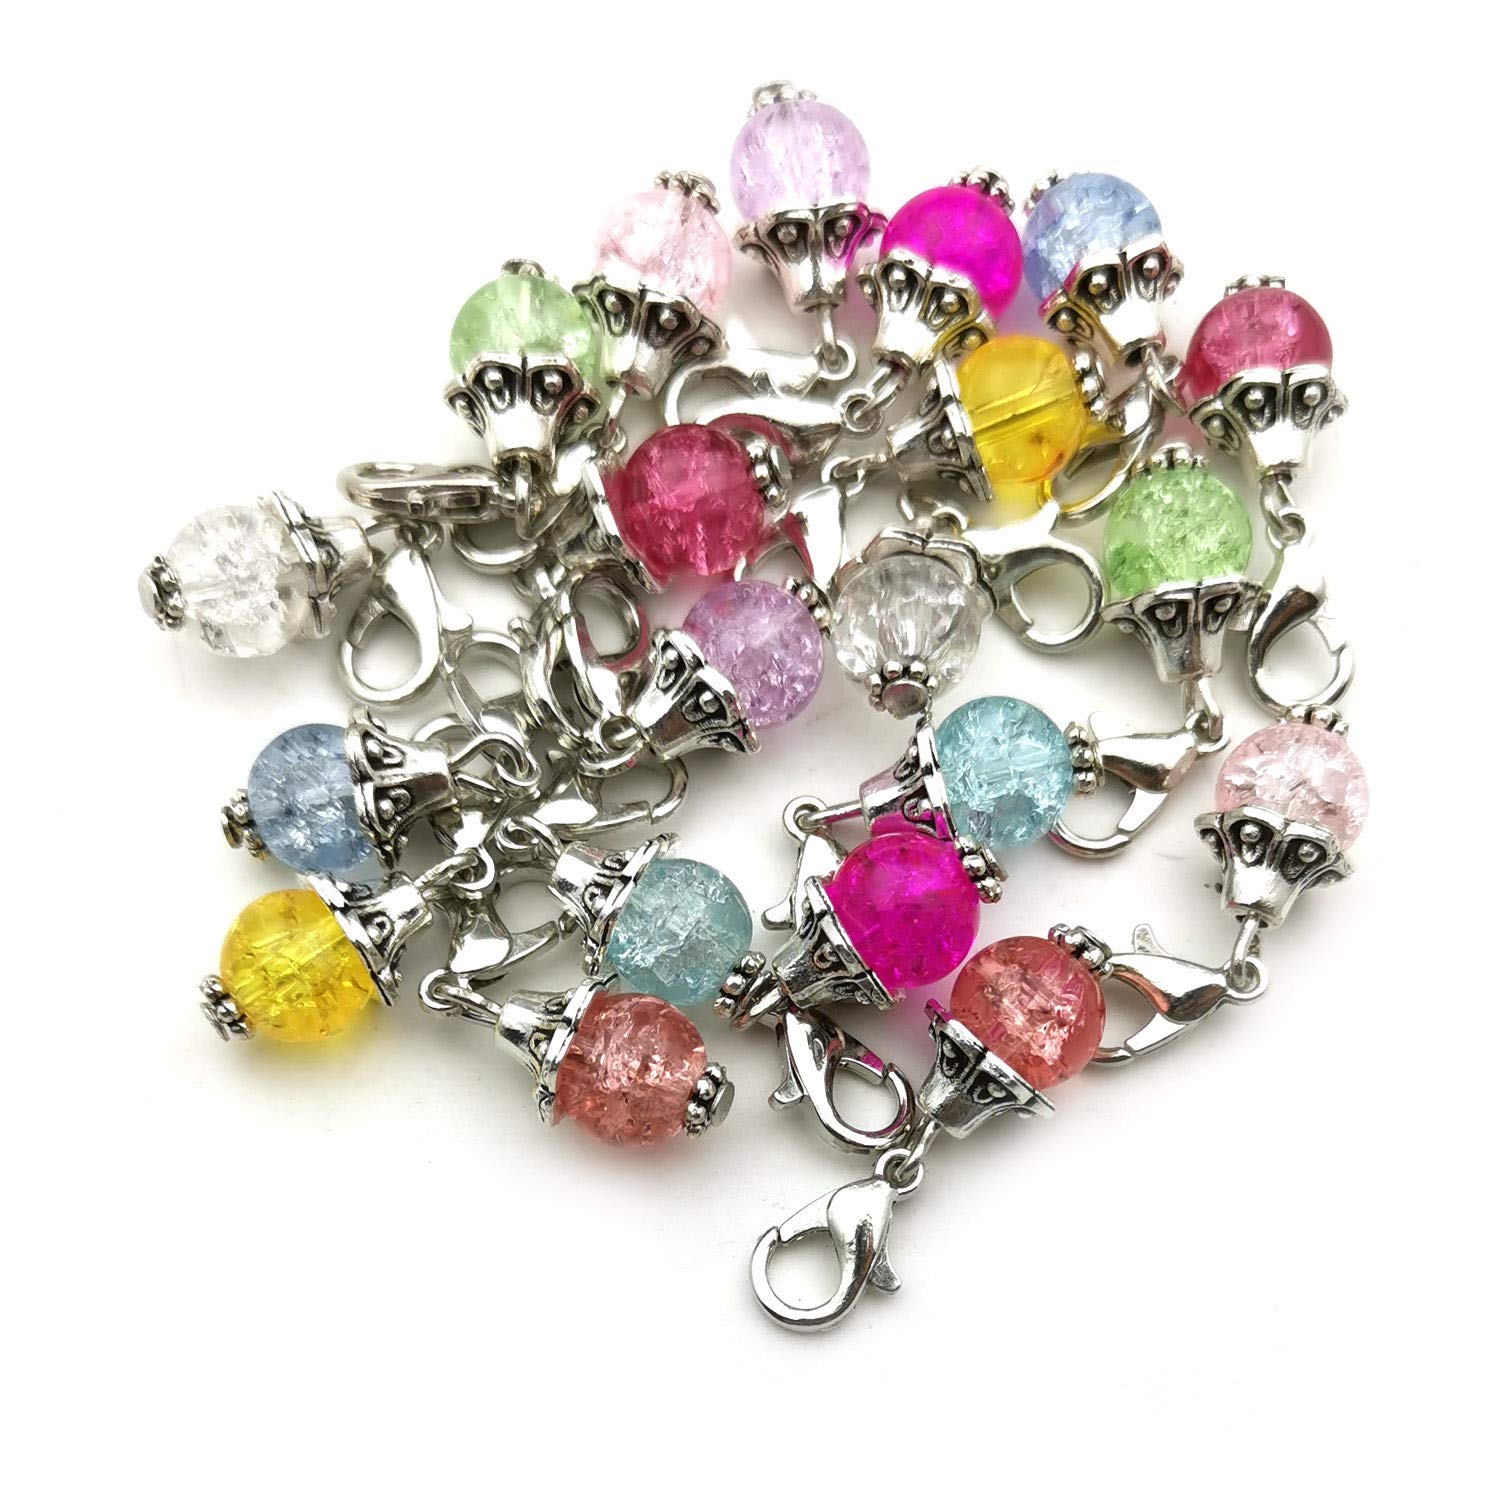 WOCRAFT 20pcs Craft Supplies Handmade Christmas Beads Dangle Charms Pendant with Lobster Clasp for Jewelry Making Accessory Fit Floating Locket Charms Necklaces M42